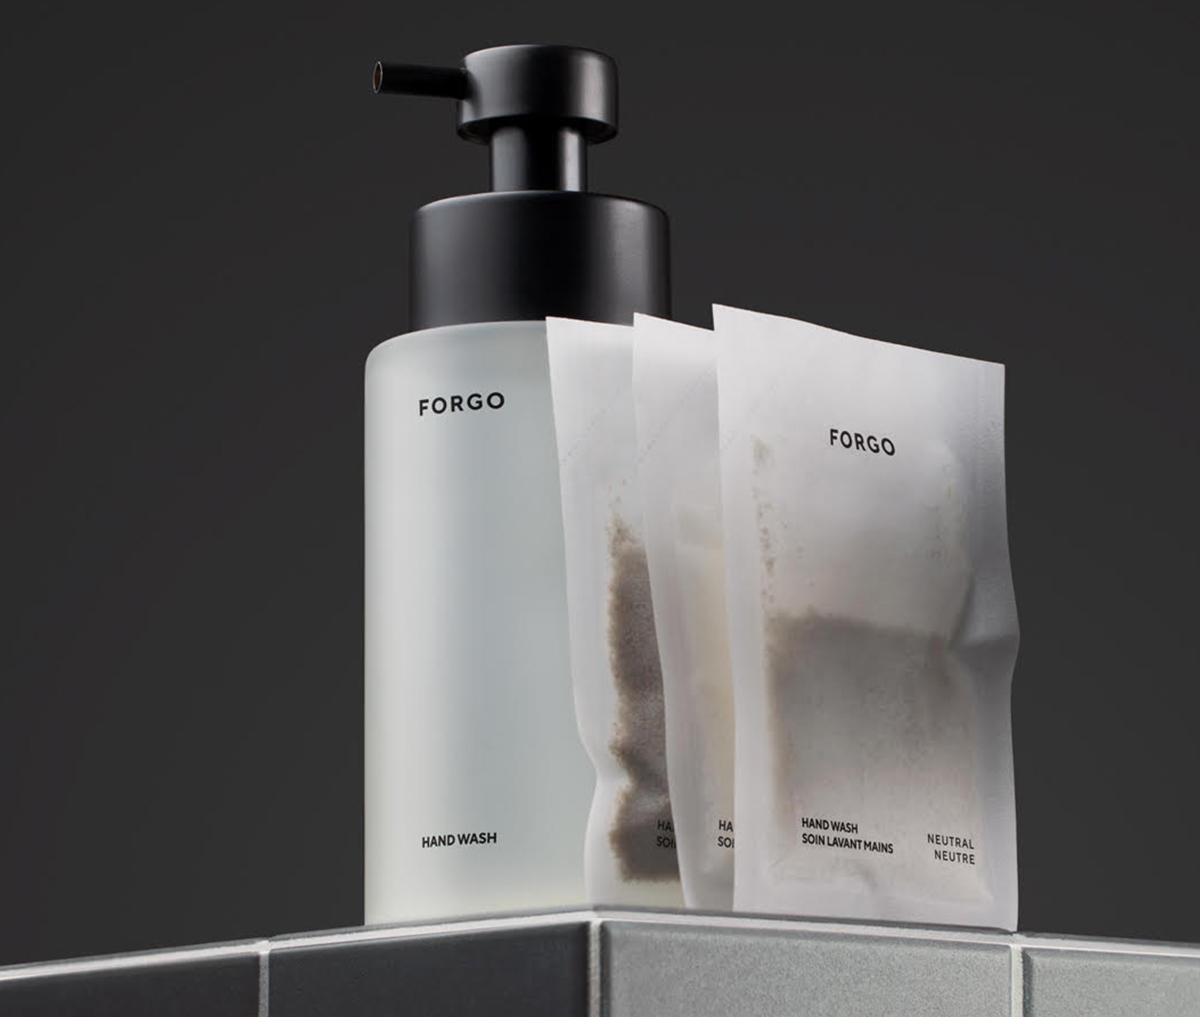 New Powder-To-Liquid Hand Wash Brand Forgo Is Sustainable Minimalism Personified